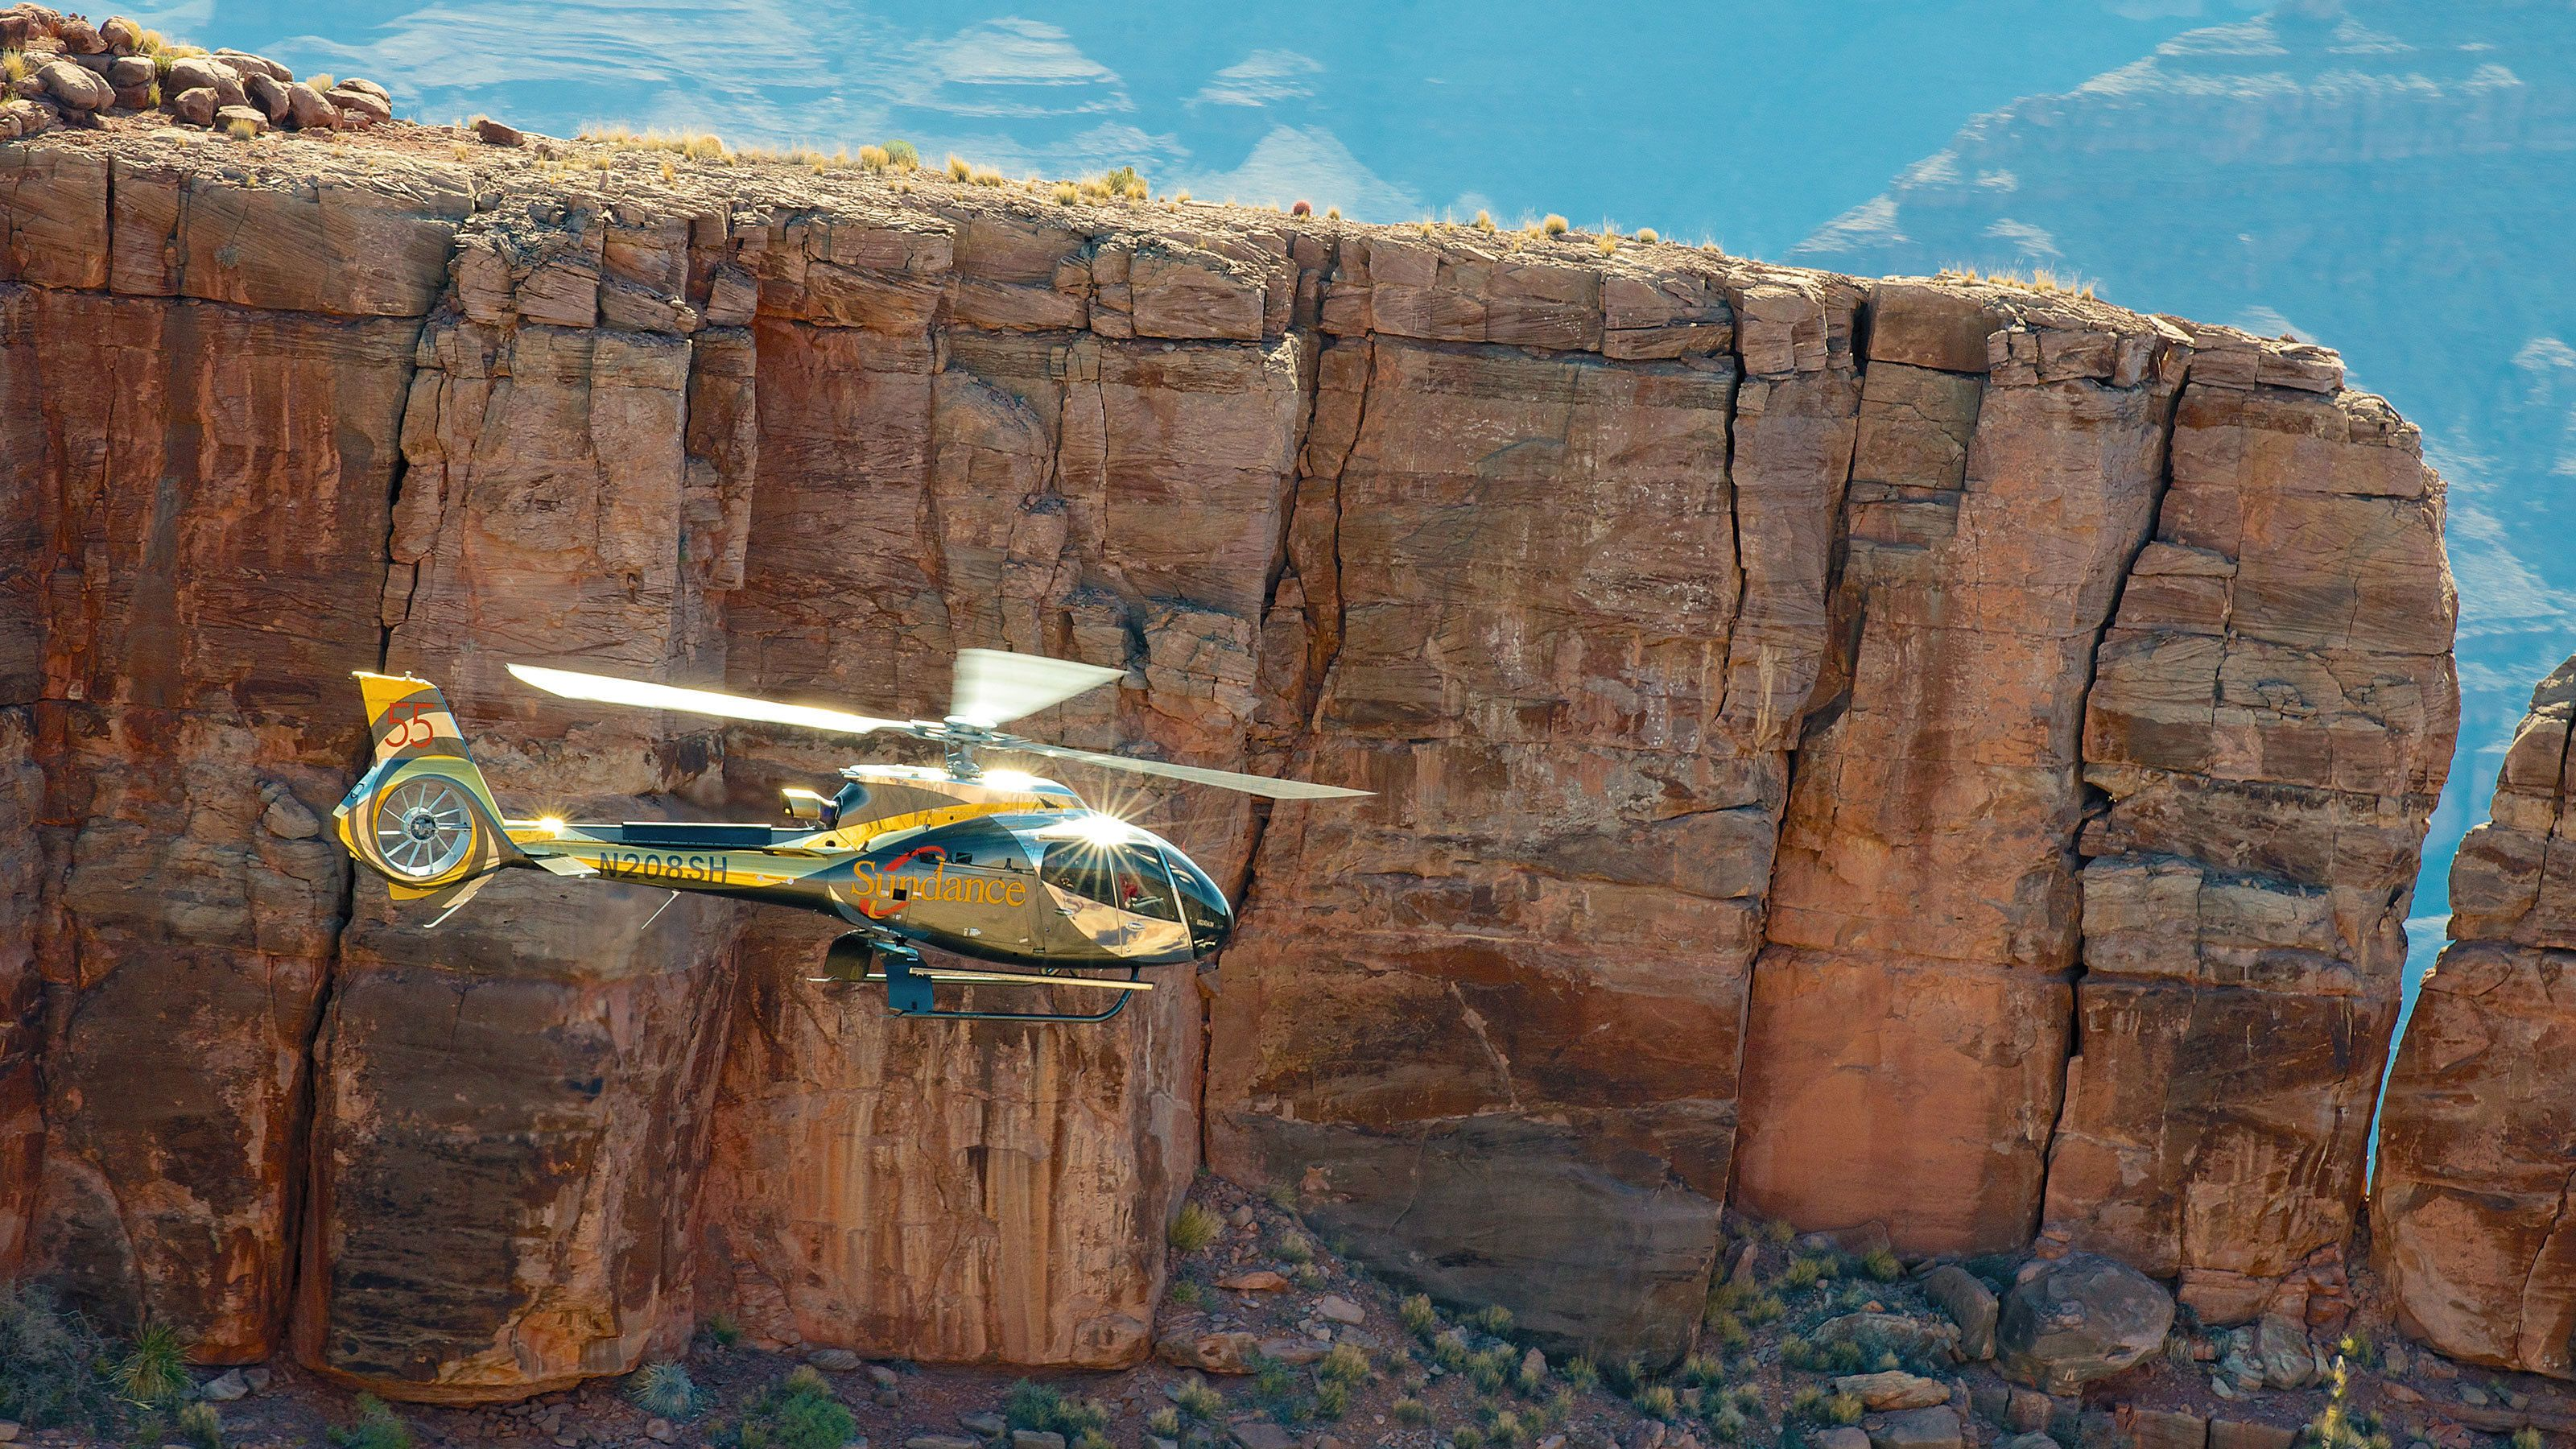 Helicopter flying around the Grand Canyon